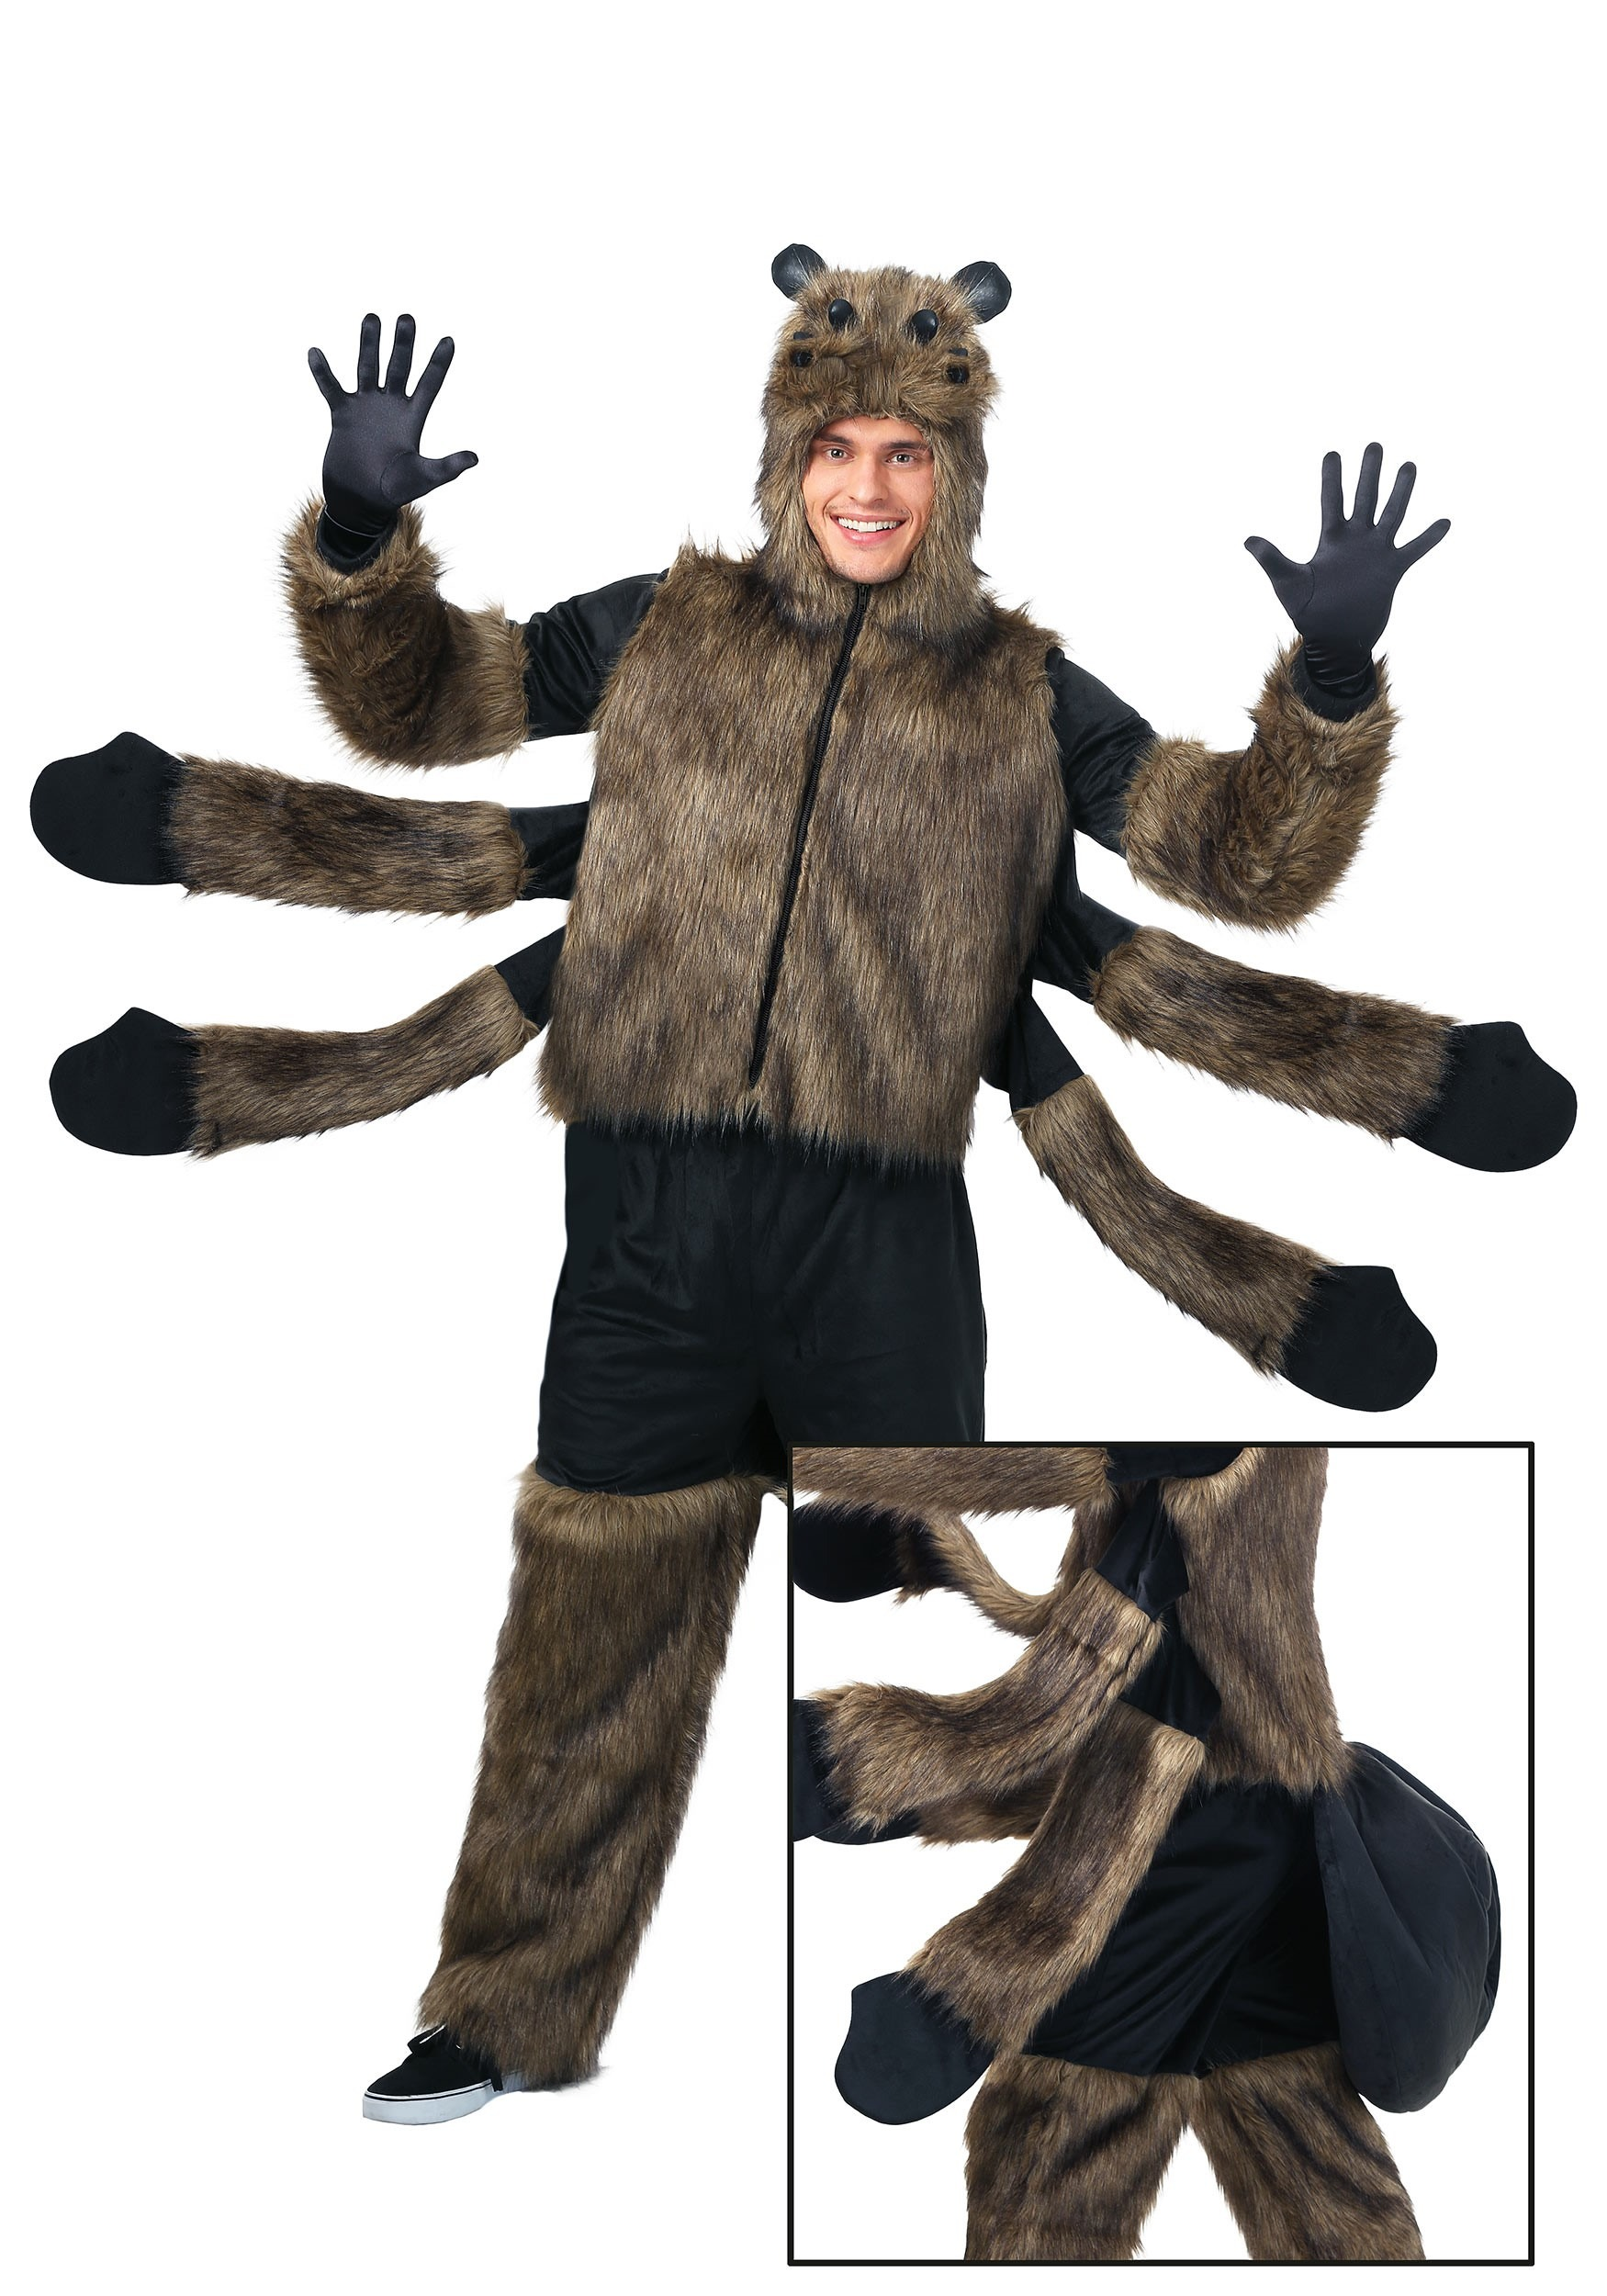 edc88bc0be7 Adult's Furry Spider Costume